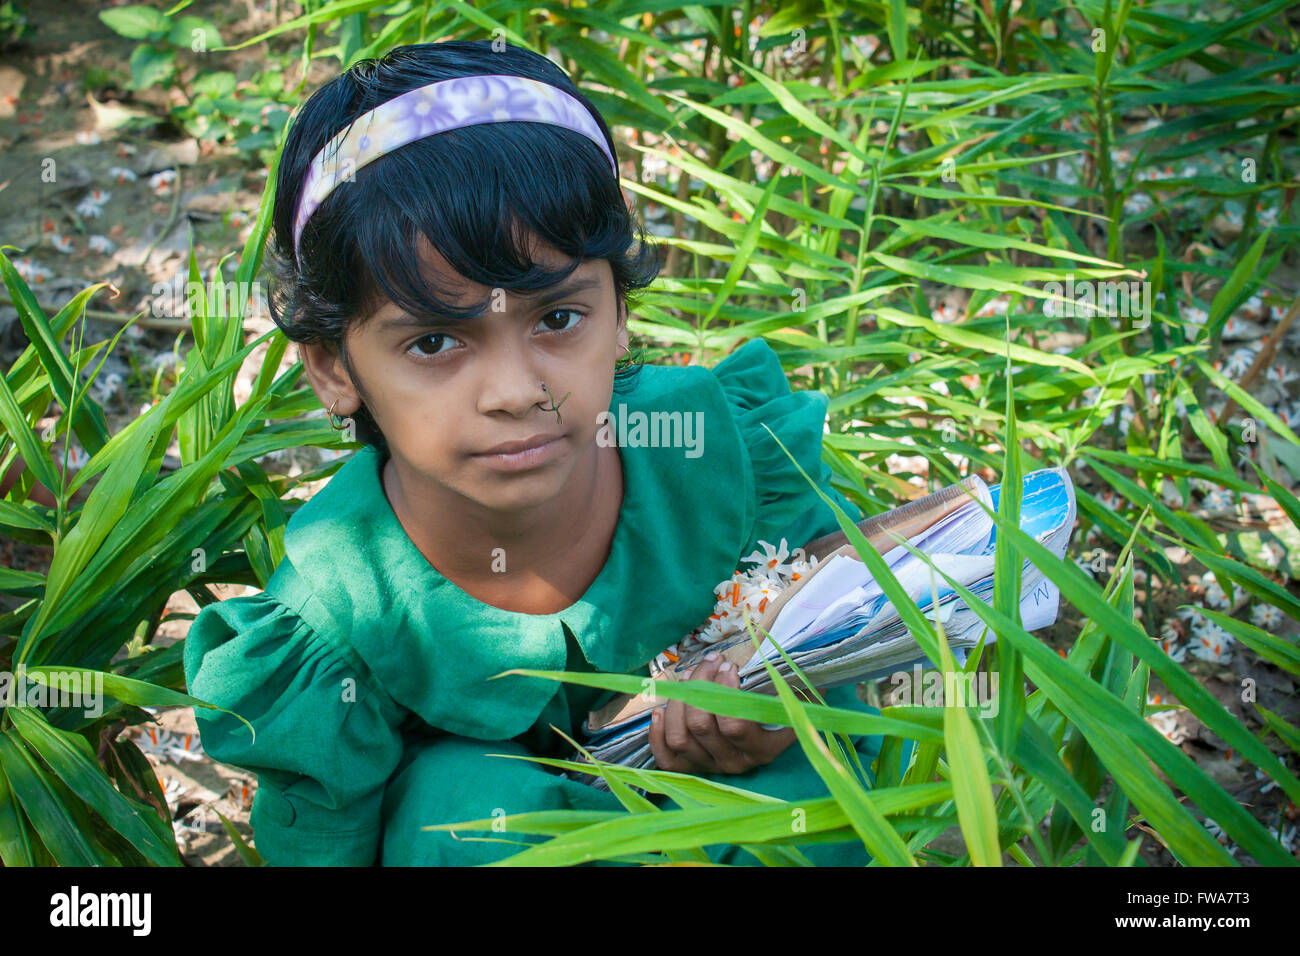 A school kid Jasmine (Flower) Collecting in SSS (Society for Social Service) Center, Tangail, Dhaka, Bangladesh - Stock Image